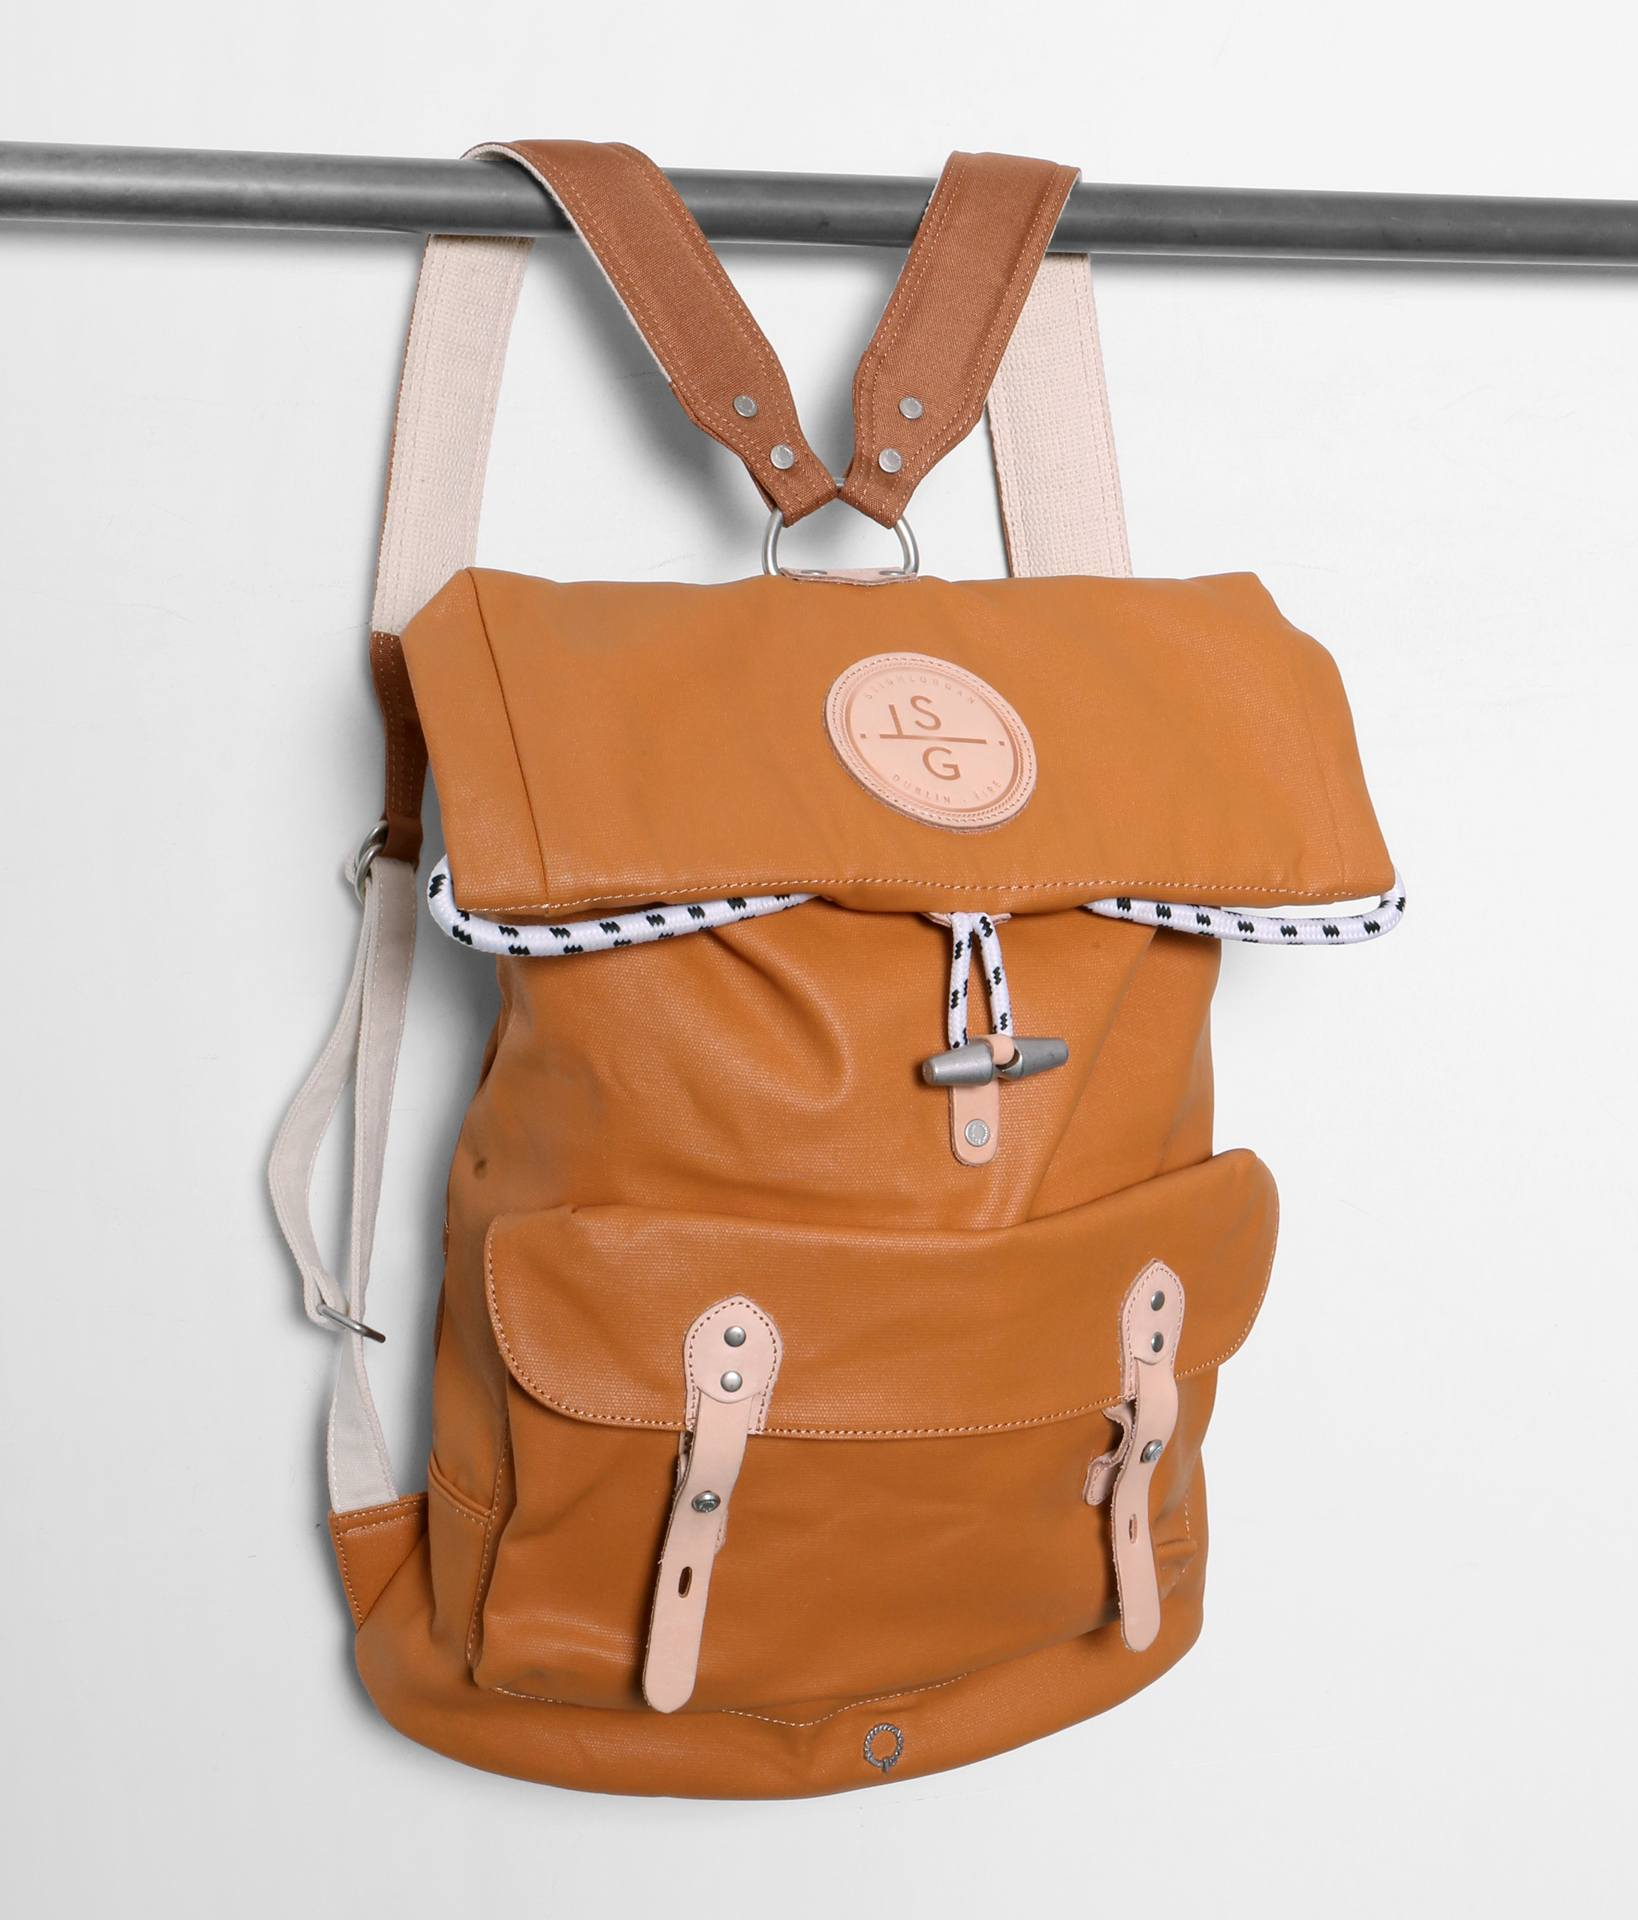 Stighlorgan 'Reilly' backpack,  €145